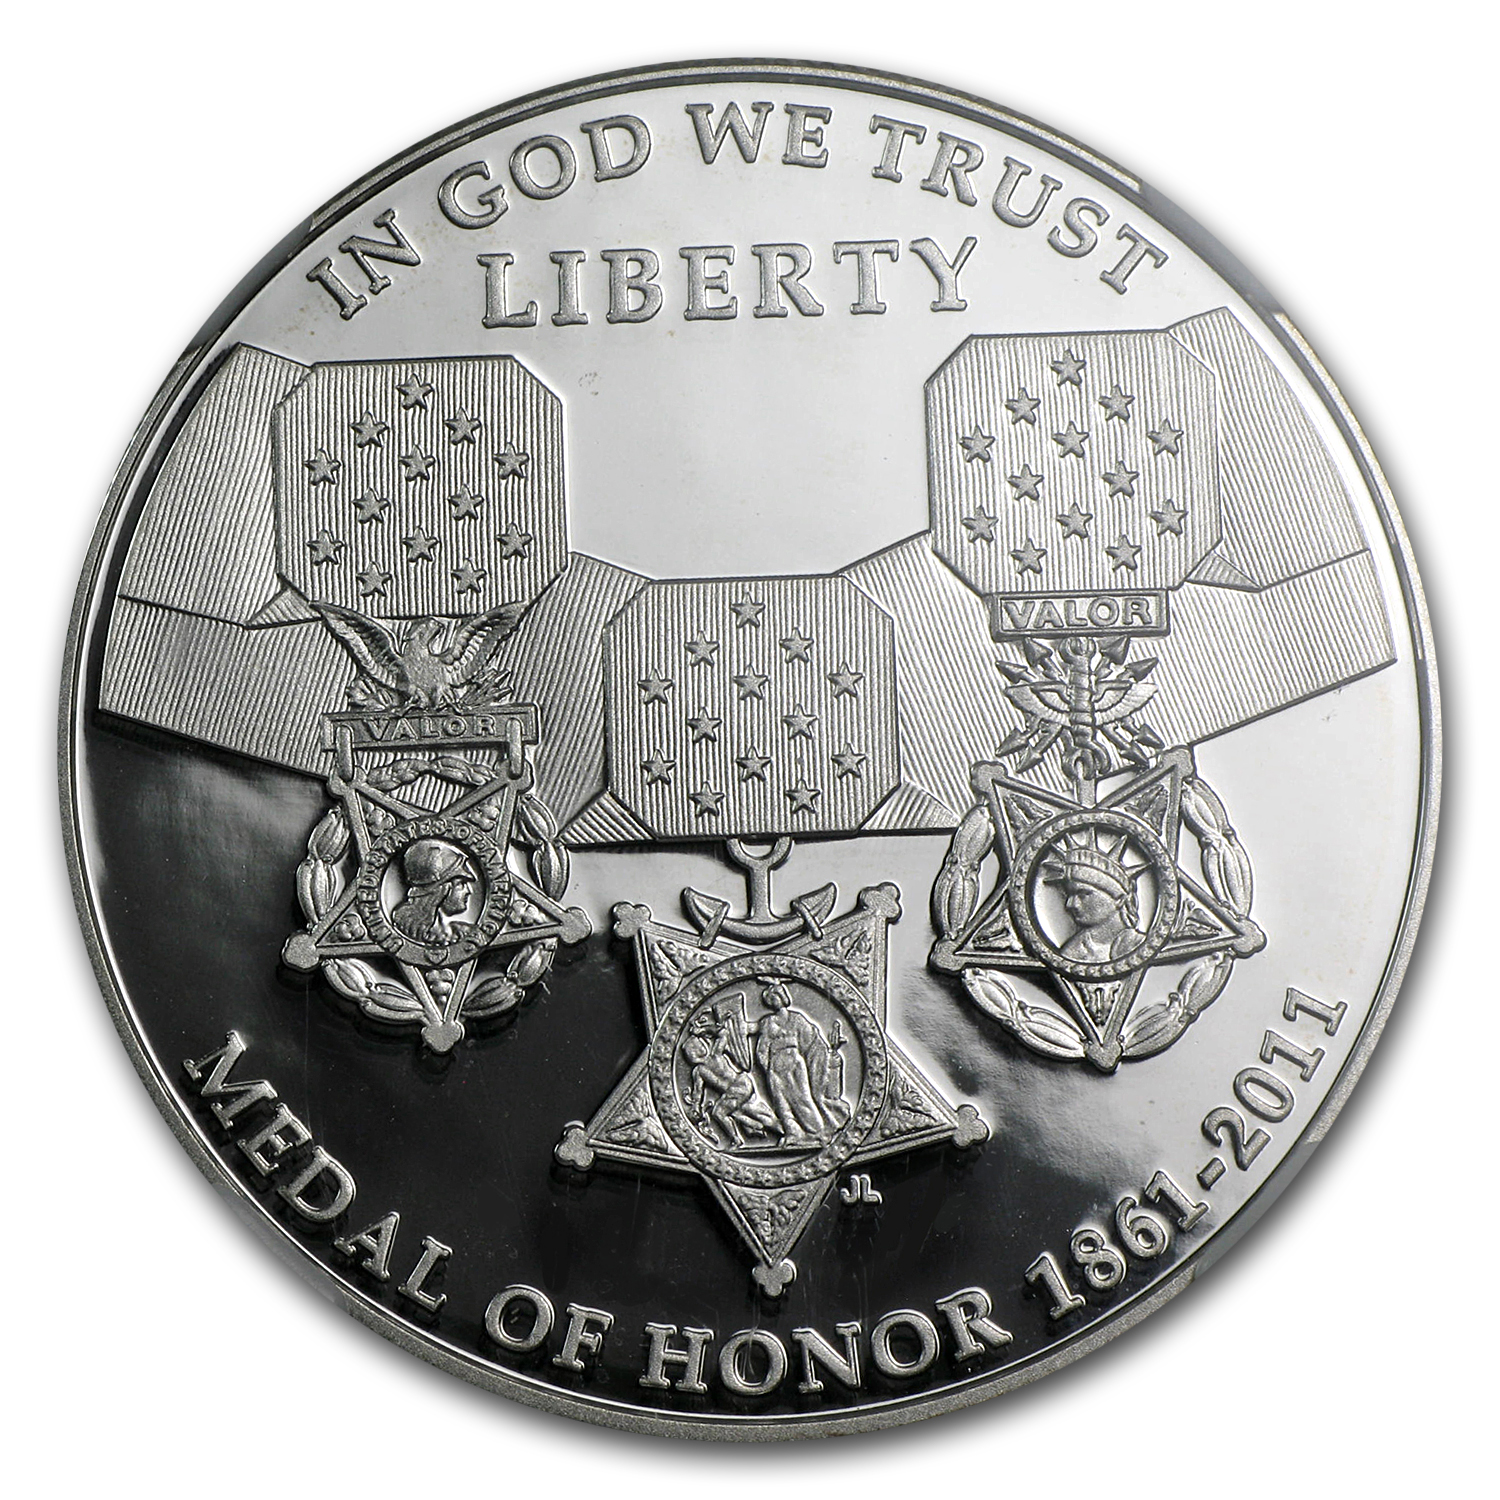 2011-P Medal of Honor $1 Silver Commemorative PF-69 UCAM NGC